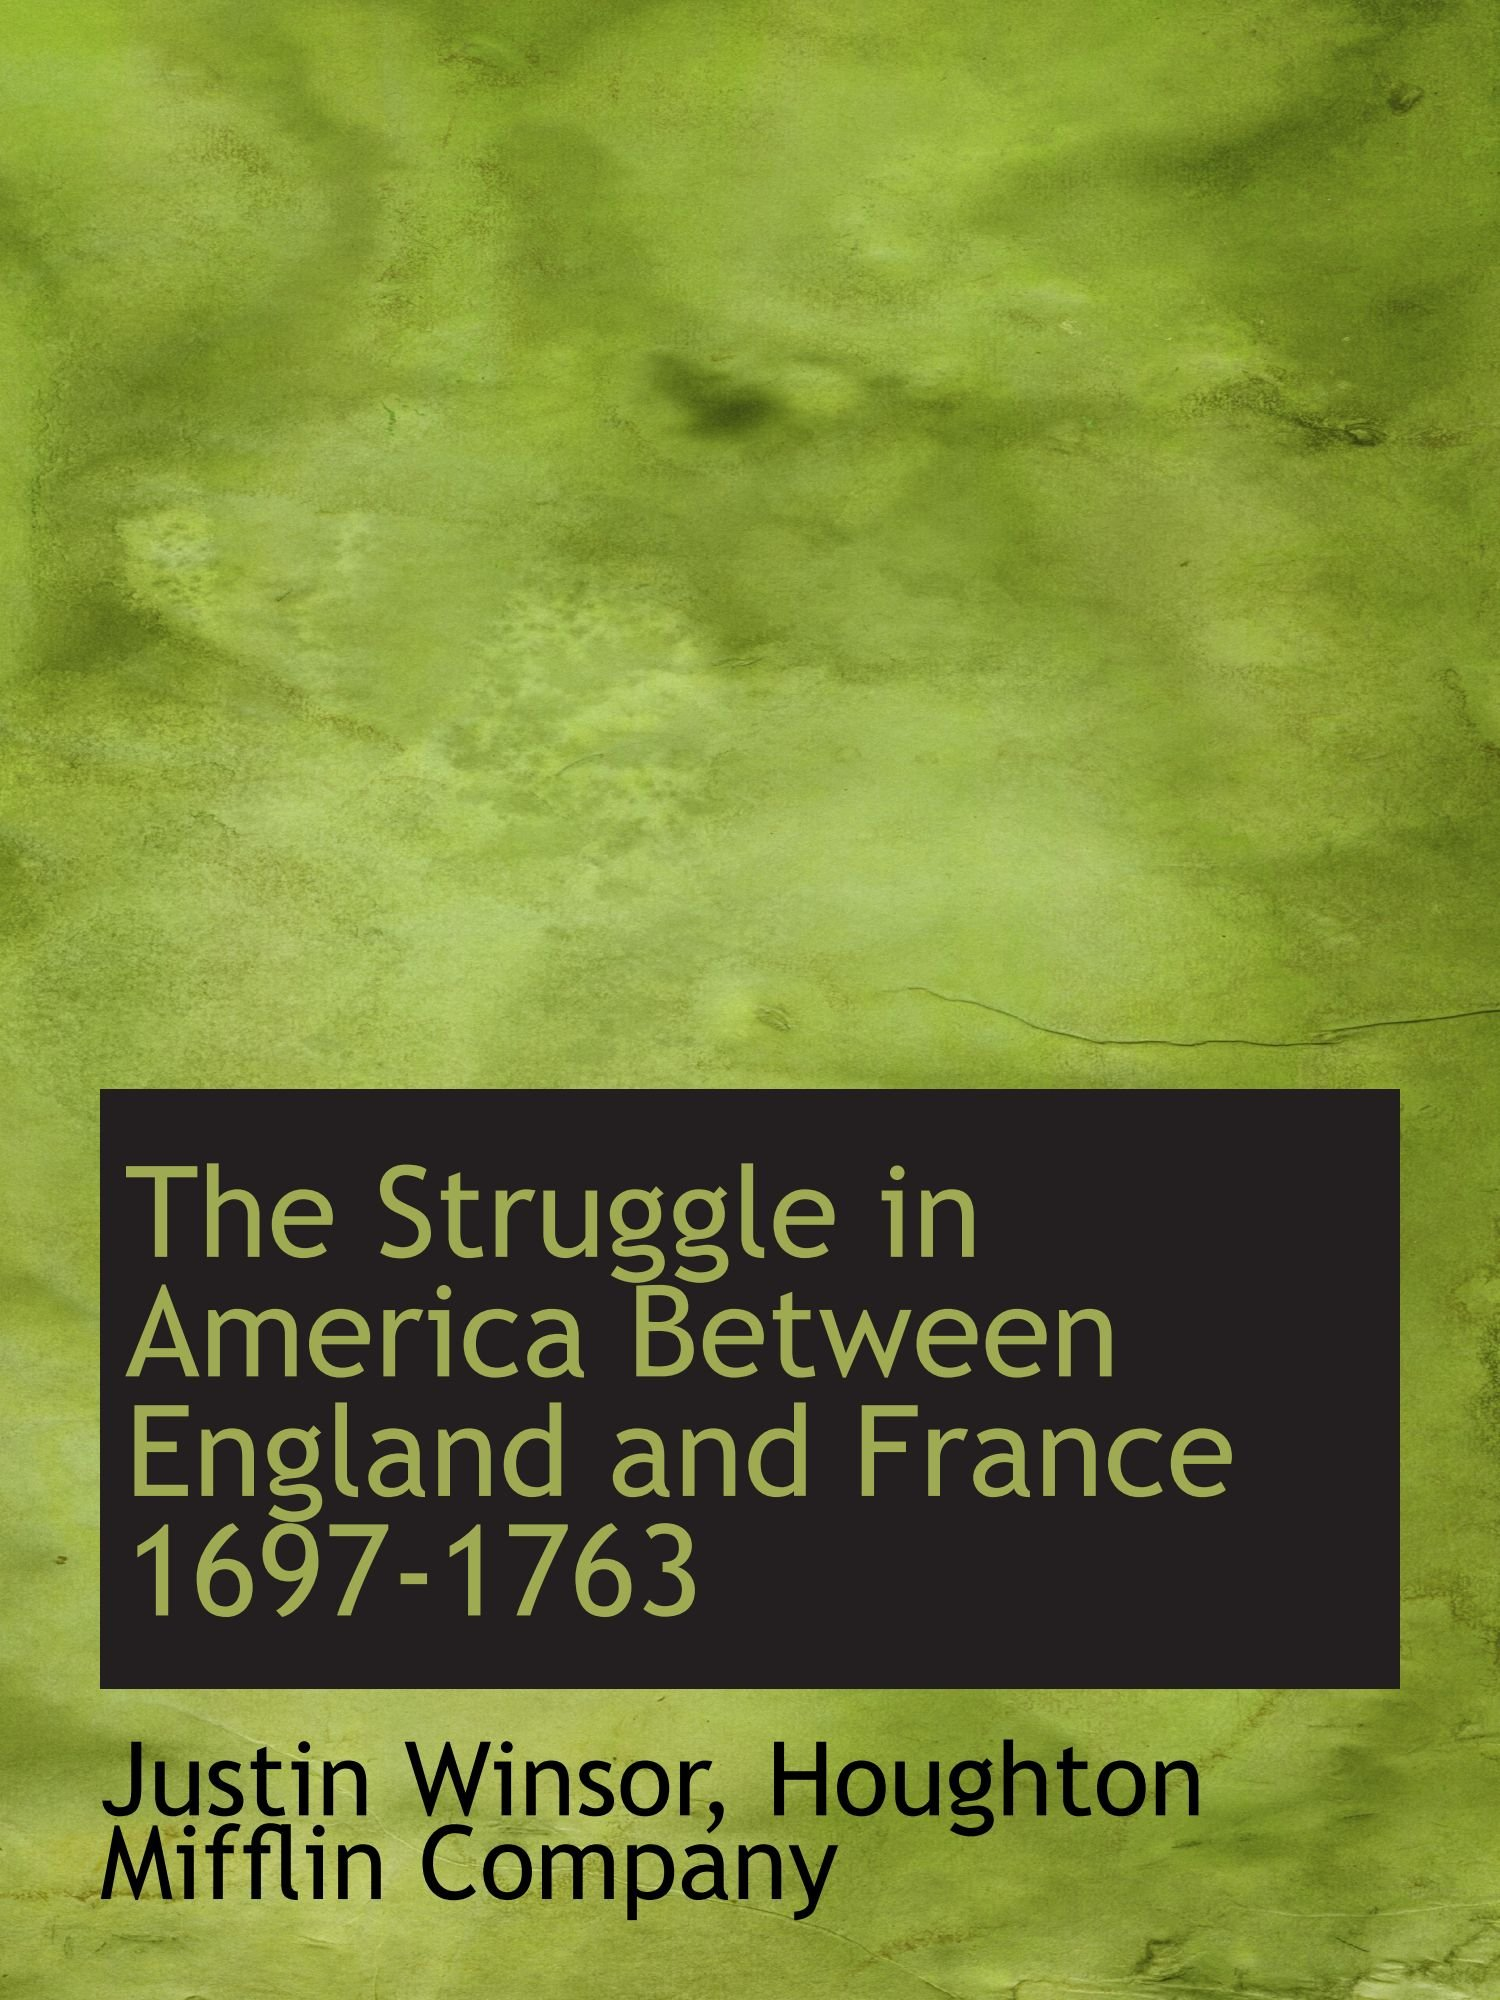 Download The Struggle in America Between England and France 1697-1763 pdf